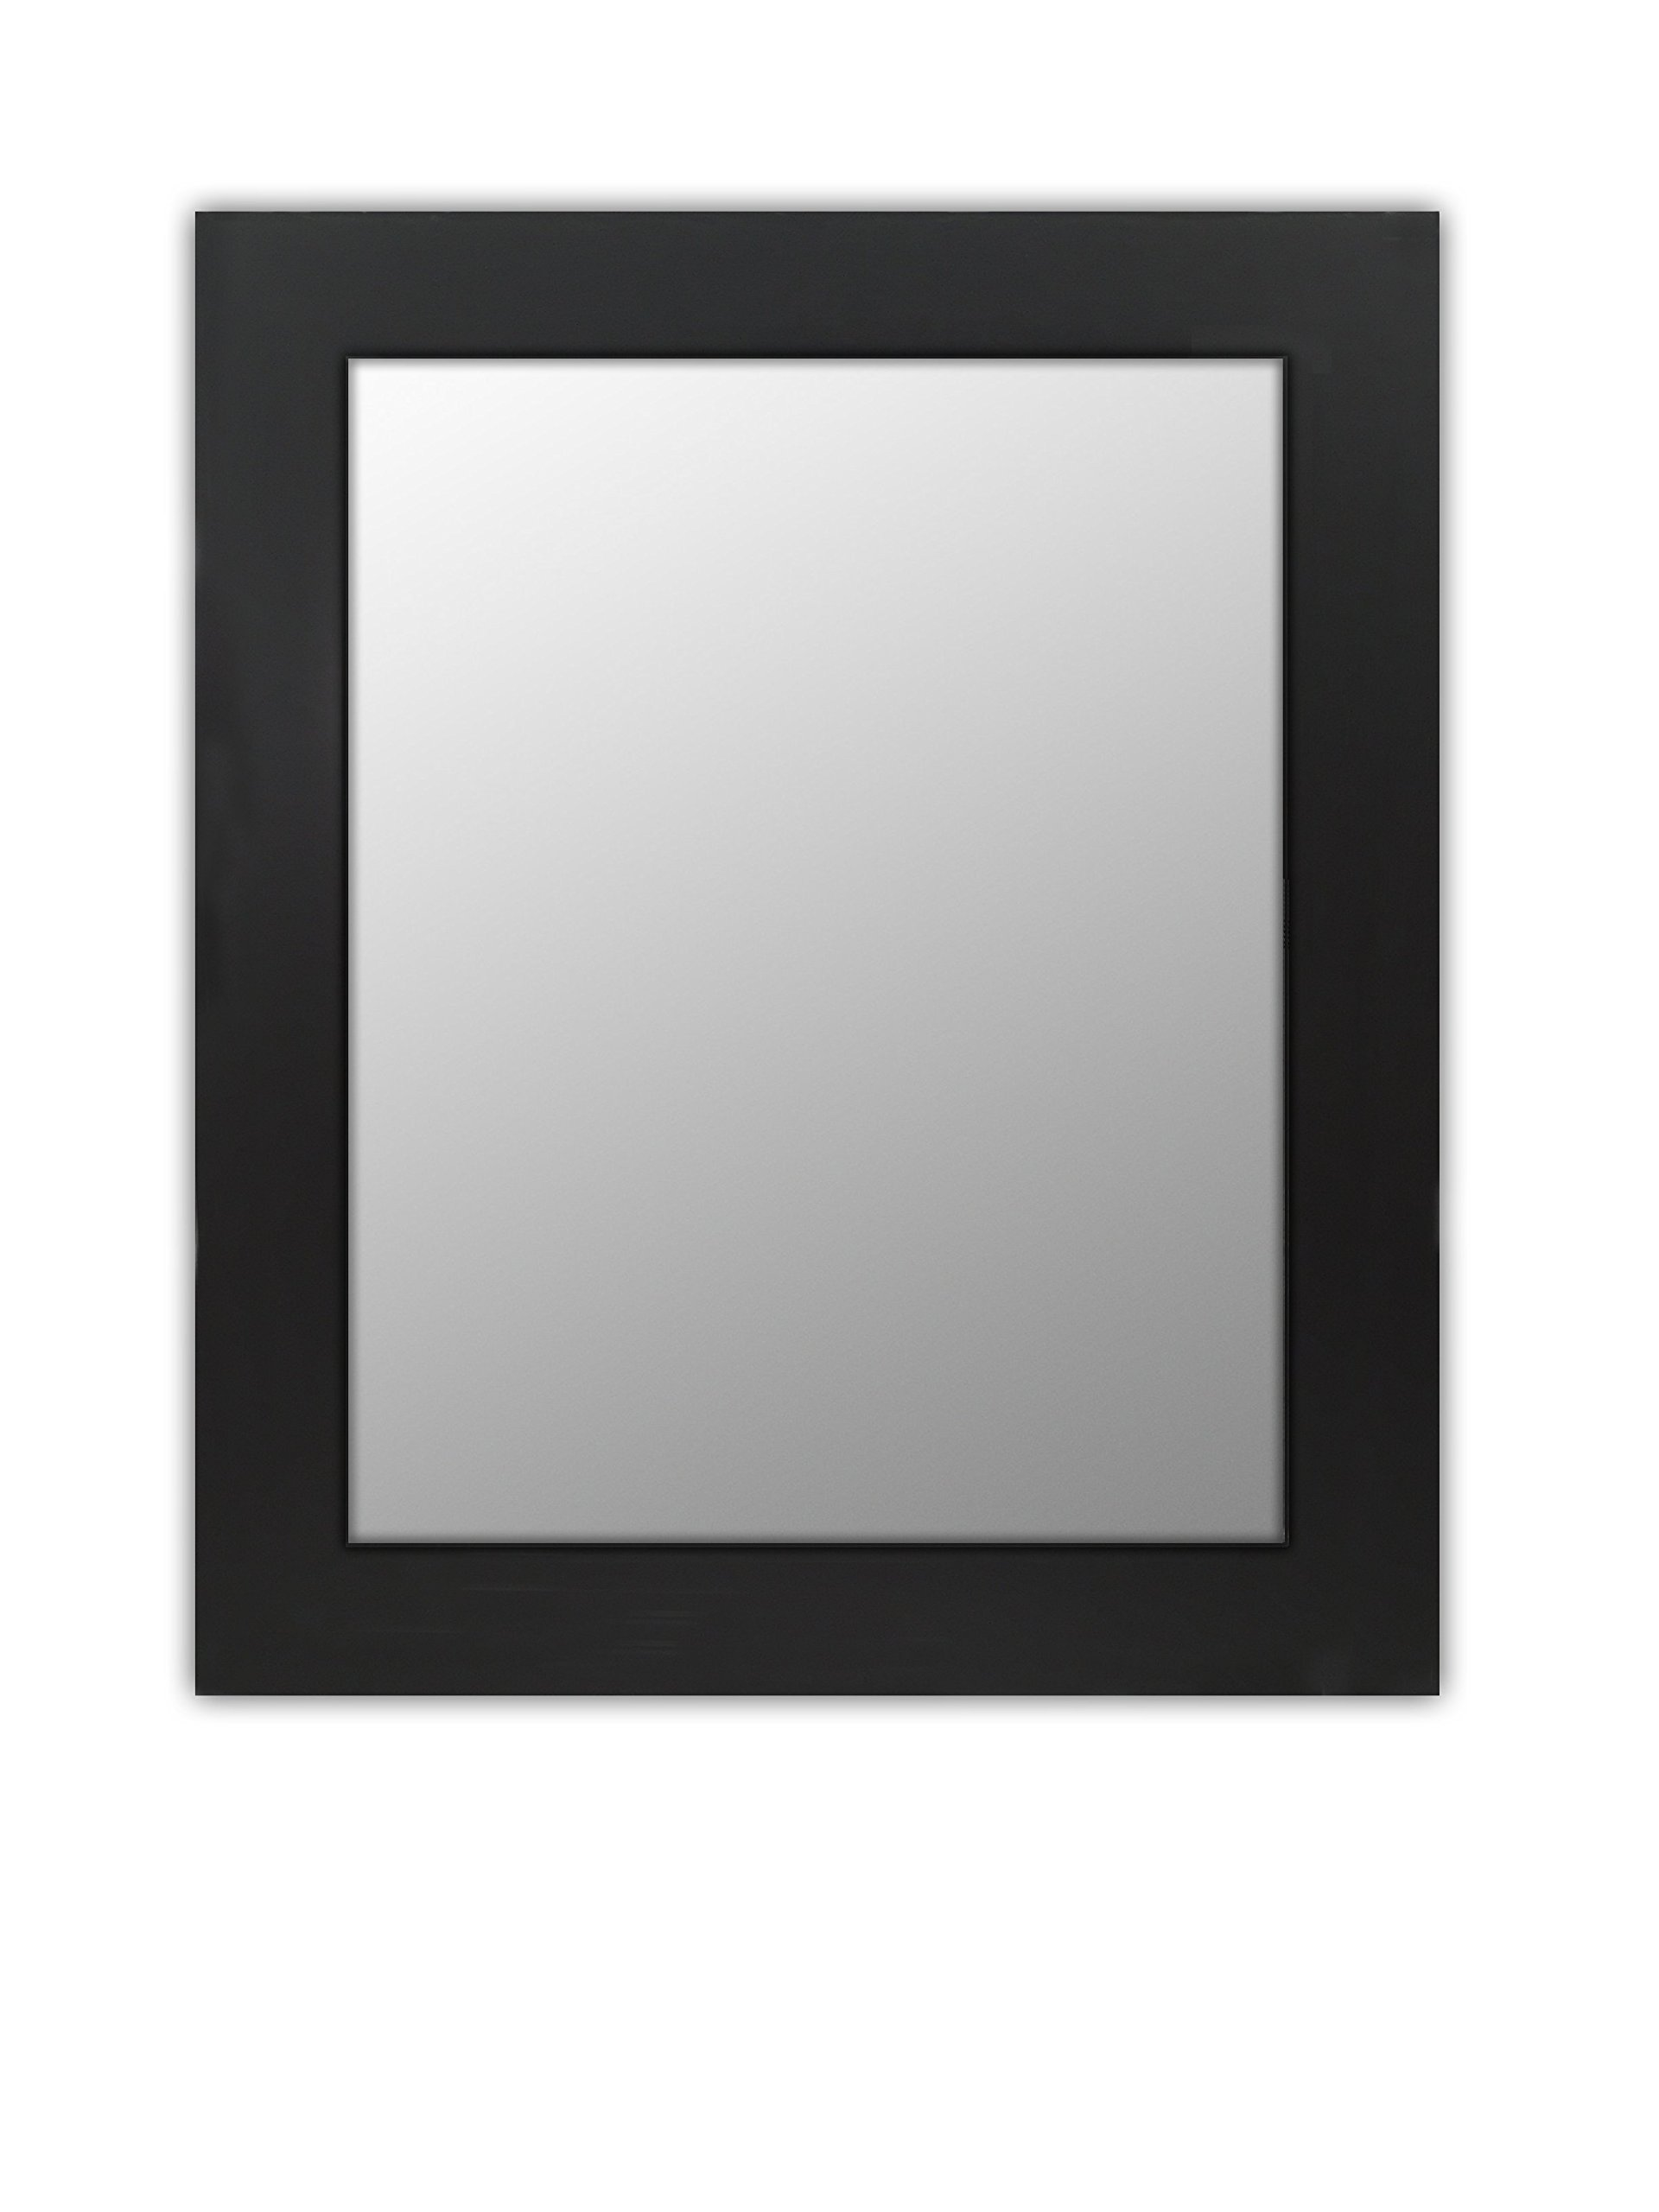 Wood Frame Mirror Modern Elegant Wall Mounted Mirror, Rectangle, Black Finish, 3 inch wide Flat Frame for Bathroom, Vanity, Living Room, Dining Room, Kitchen, Bedroom, Office By Raphael Rozen (16x20)